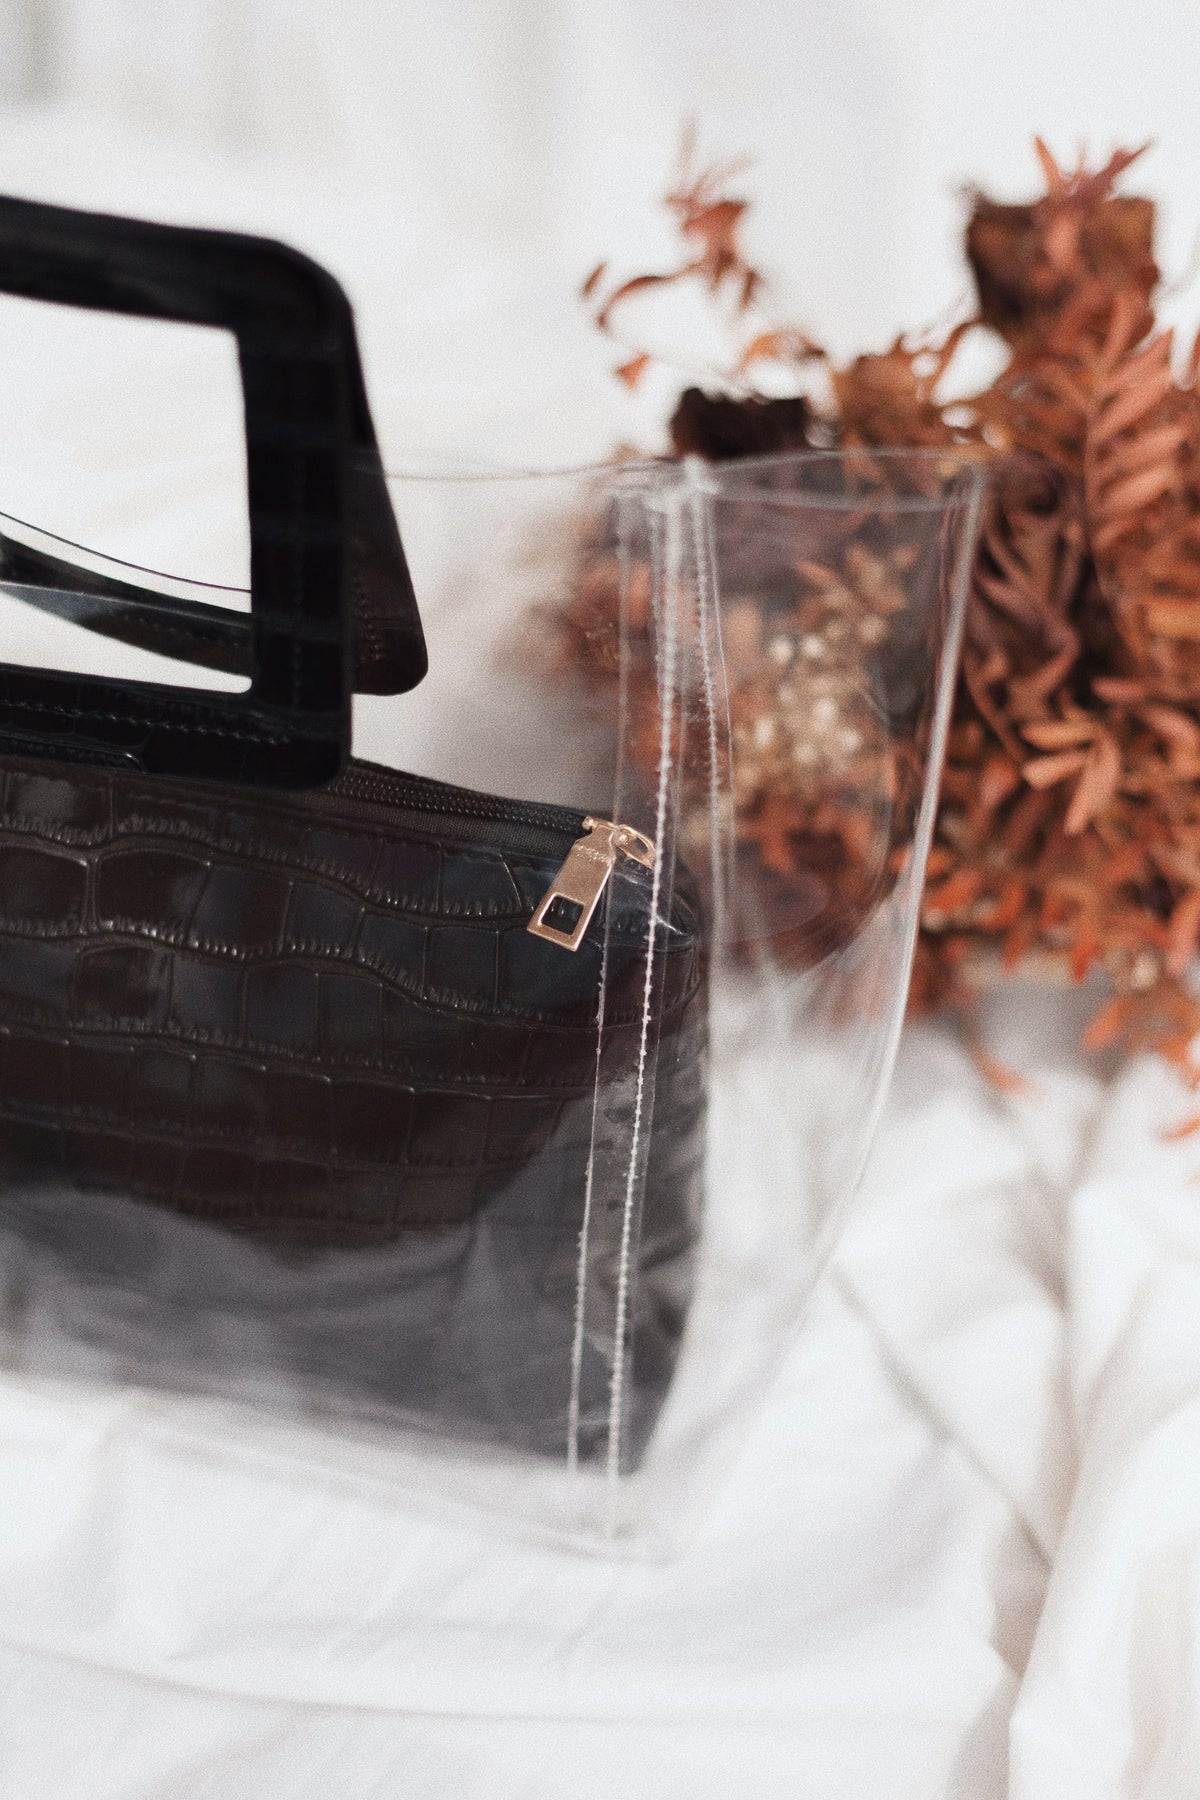 Black transparent handbag